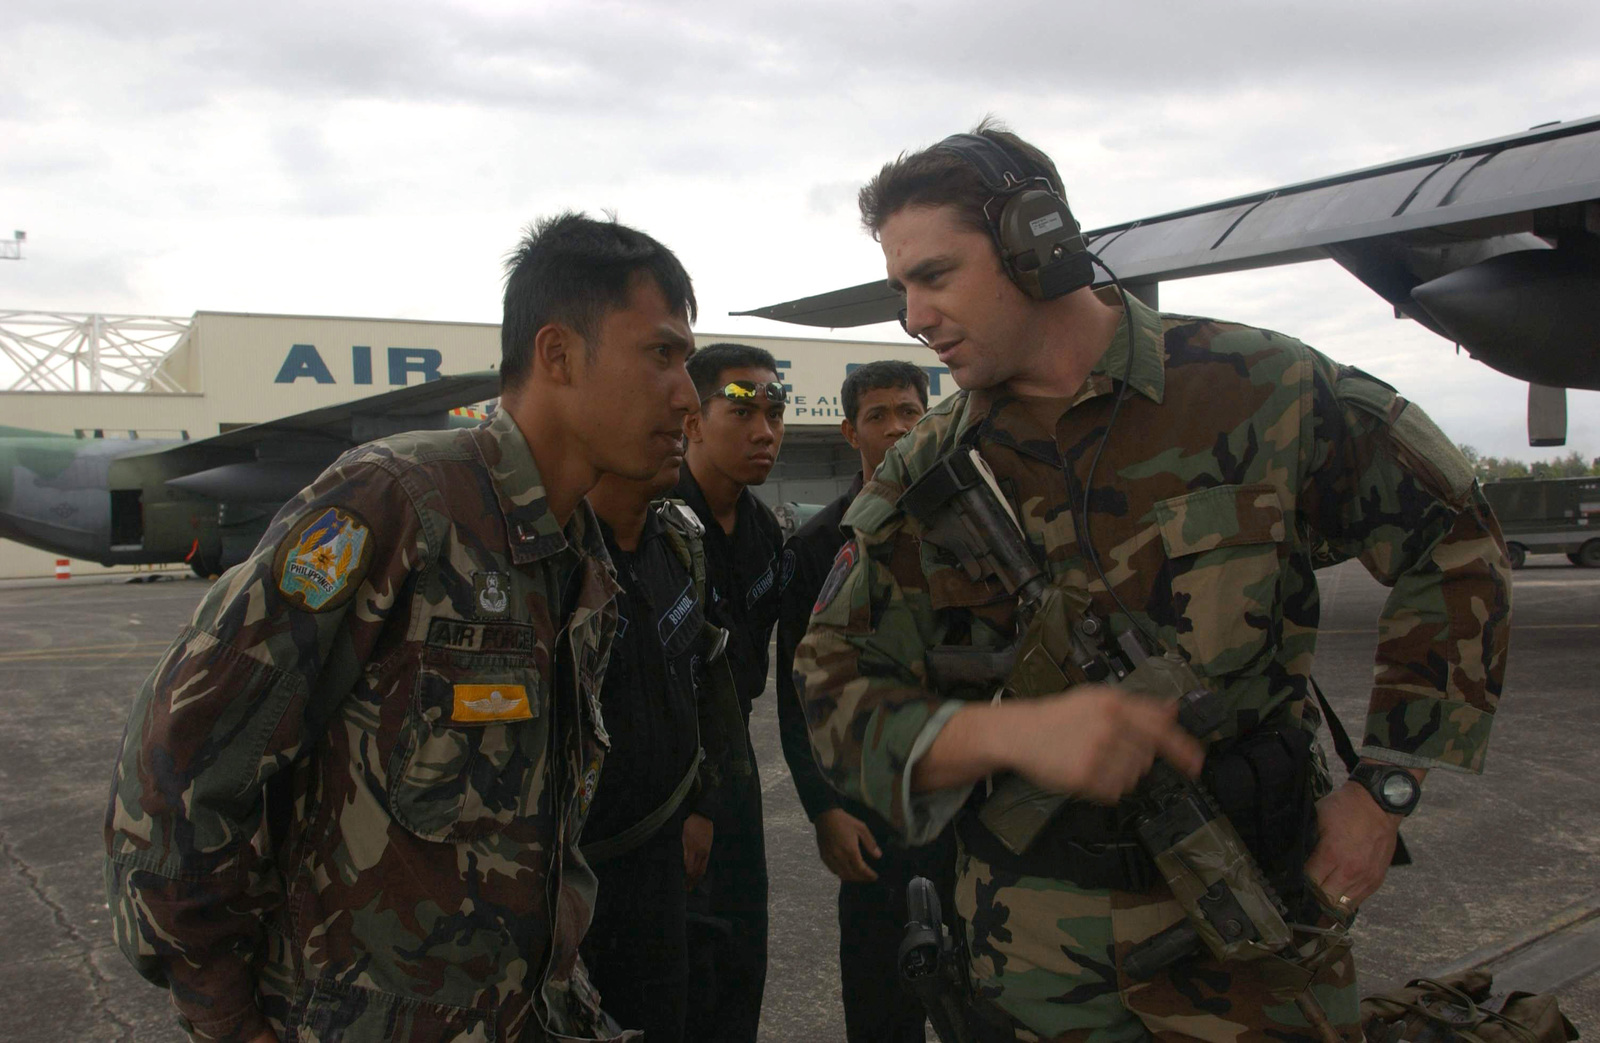 US Air Force (USAF) STAFF Sergeant (SSGT) Michael Paulson (right), Combat Controller, 320th Special Tactics Squadron (STS), Kadena Air Base (AB), Japan, briefs Philippine Air Force (PAF) AIRMAN First Class (A1C) Joseph Delacruz on exercise procedures during a joint training session during BALANCE PISTON 03-5. The joint exercise is designed to improve the interoperability and tactical proficiency of the armed forces of the US and Philippines